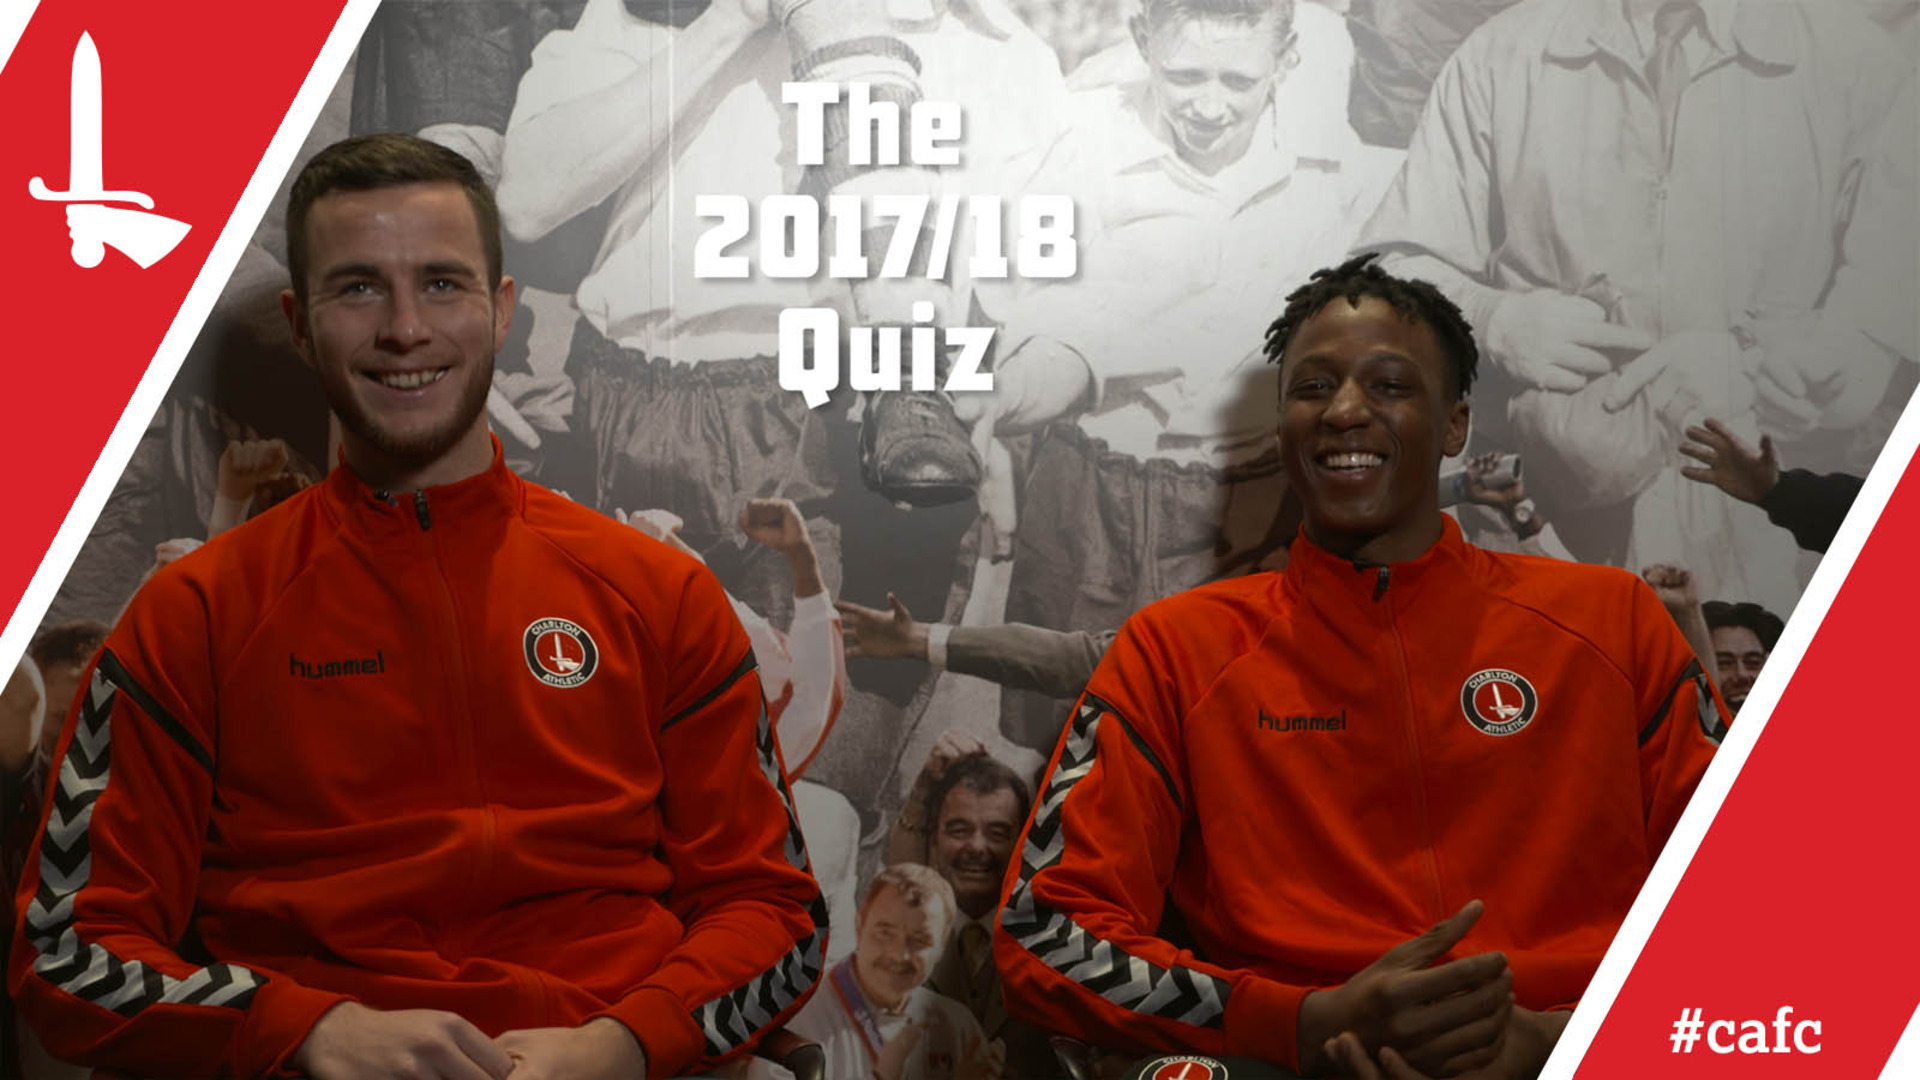 Harry Lennon and Joe Aribo compete in the 2017/18 quiz